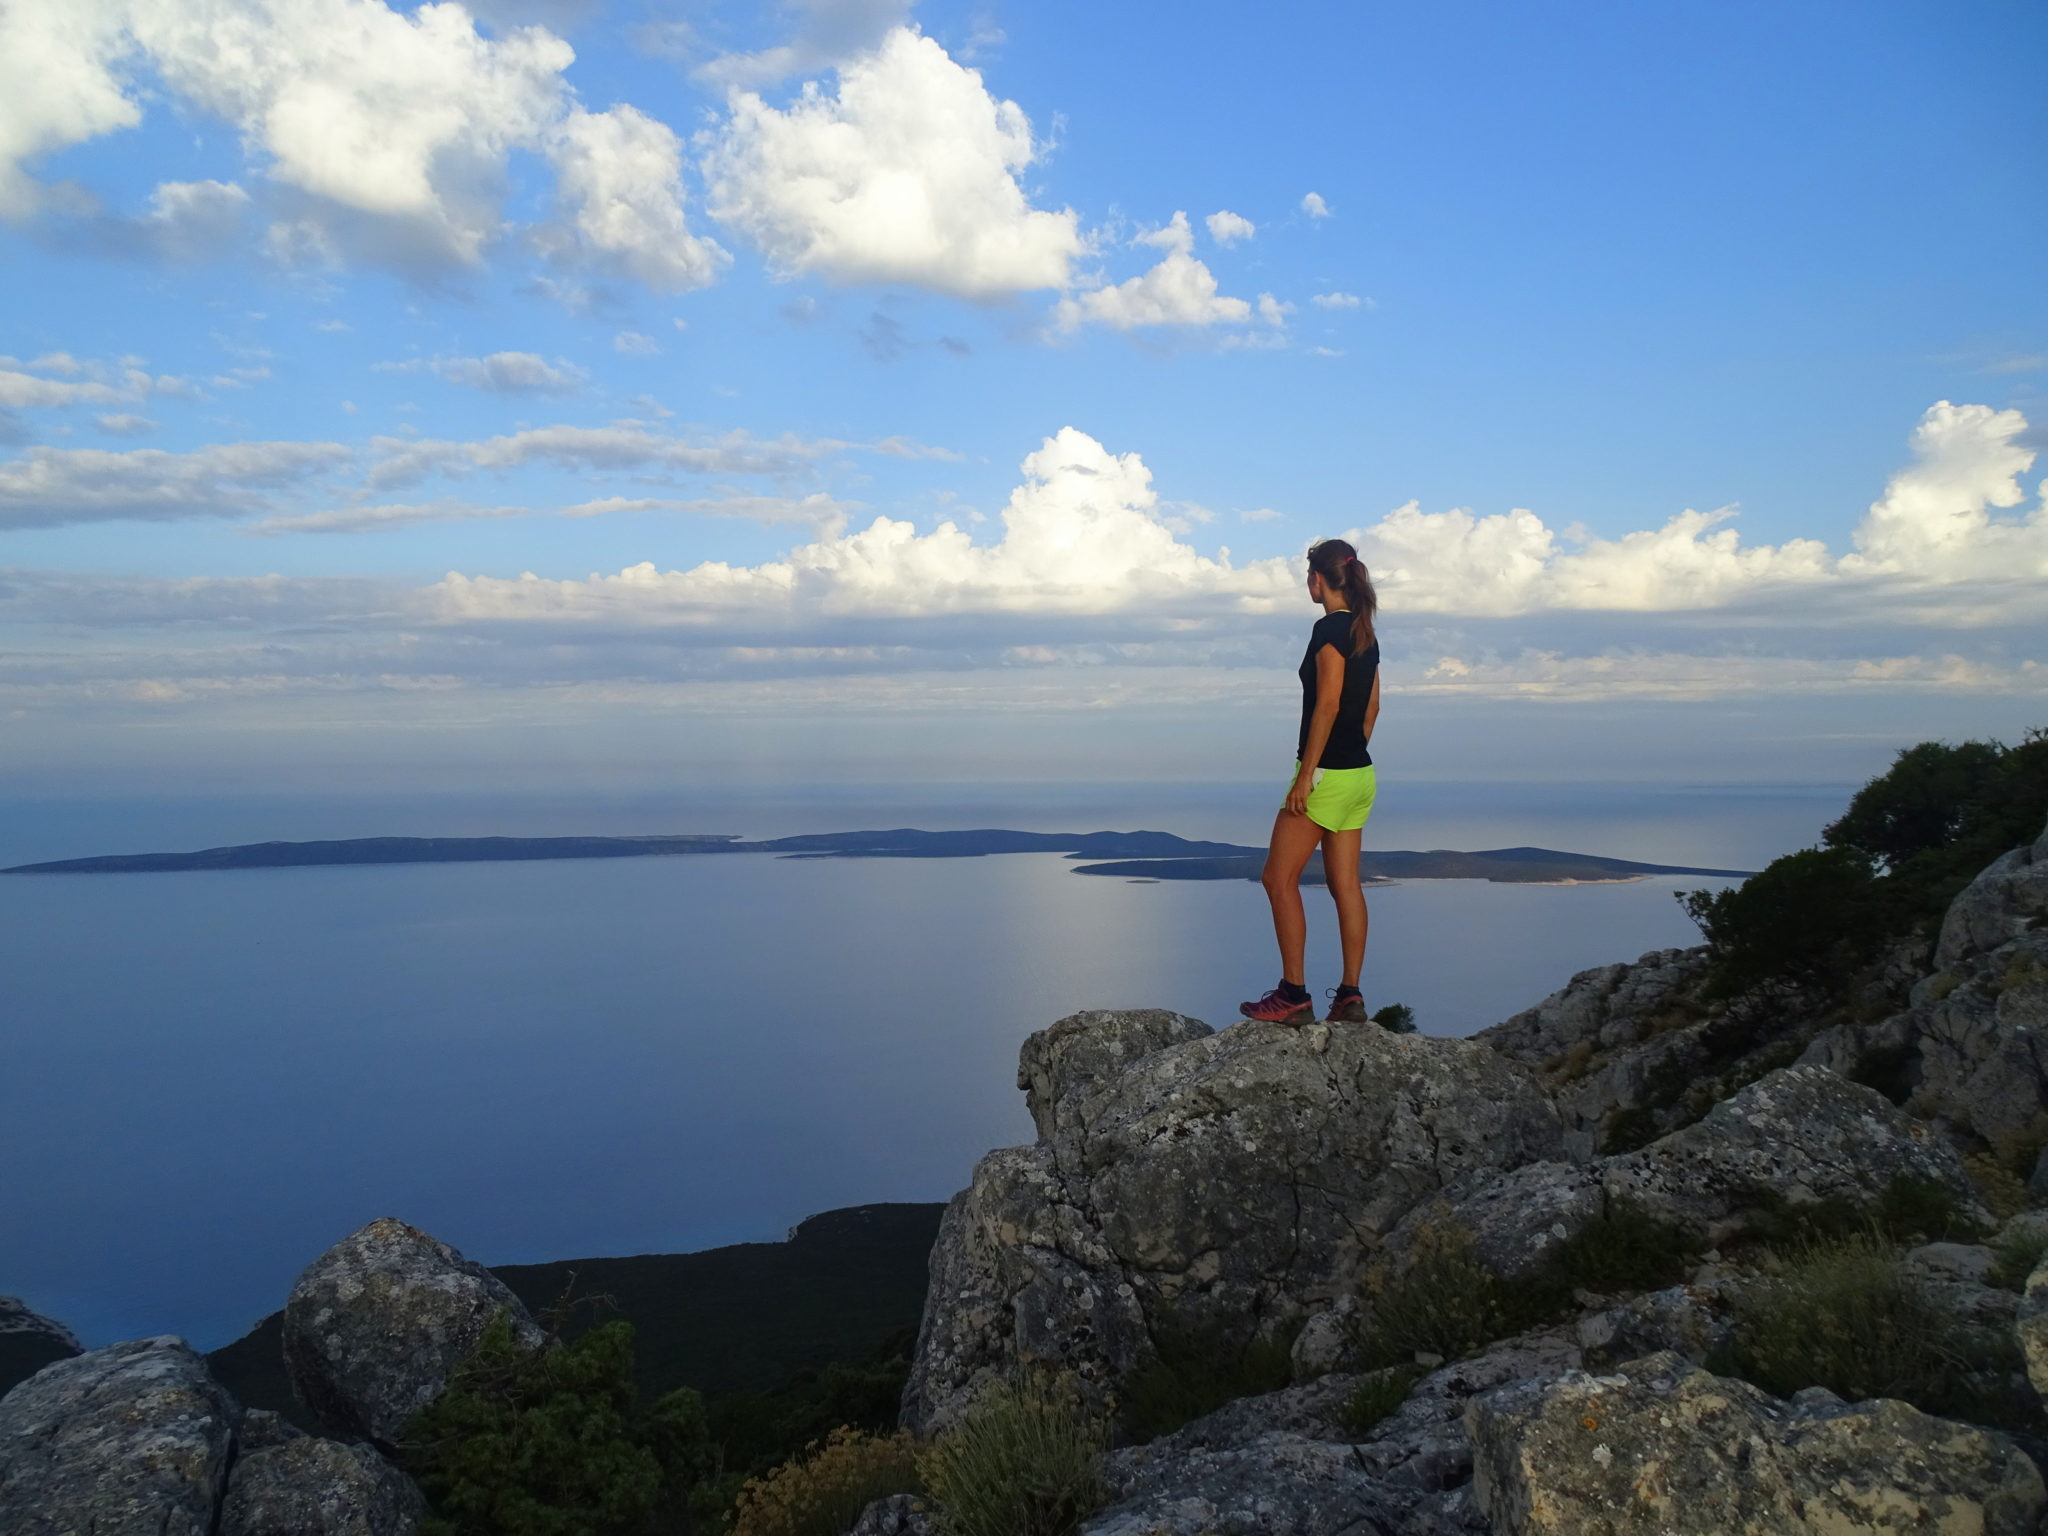 Views from Lošinj's highest peak Televrin, 588 m